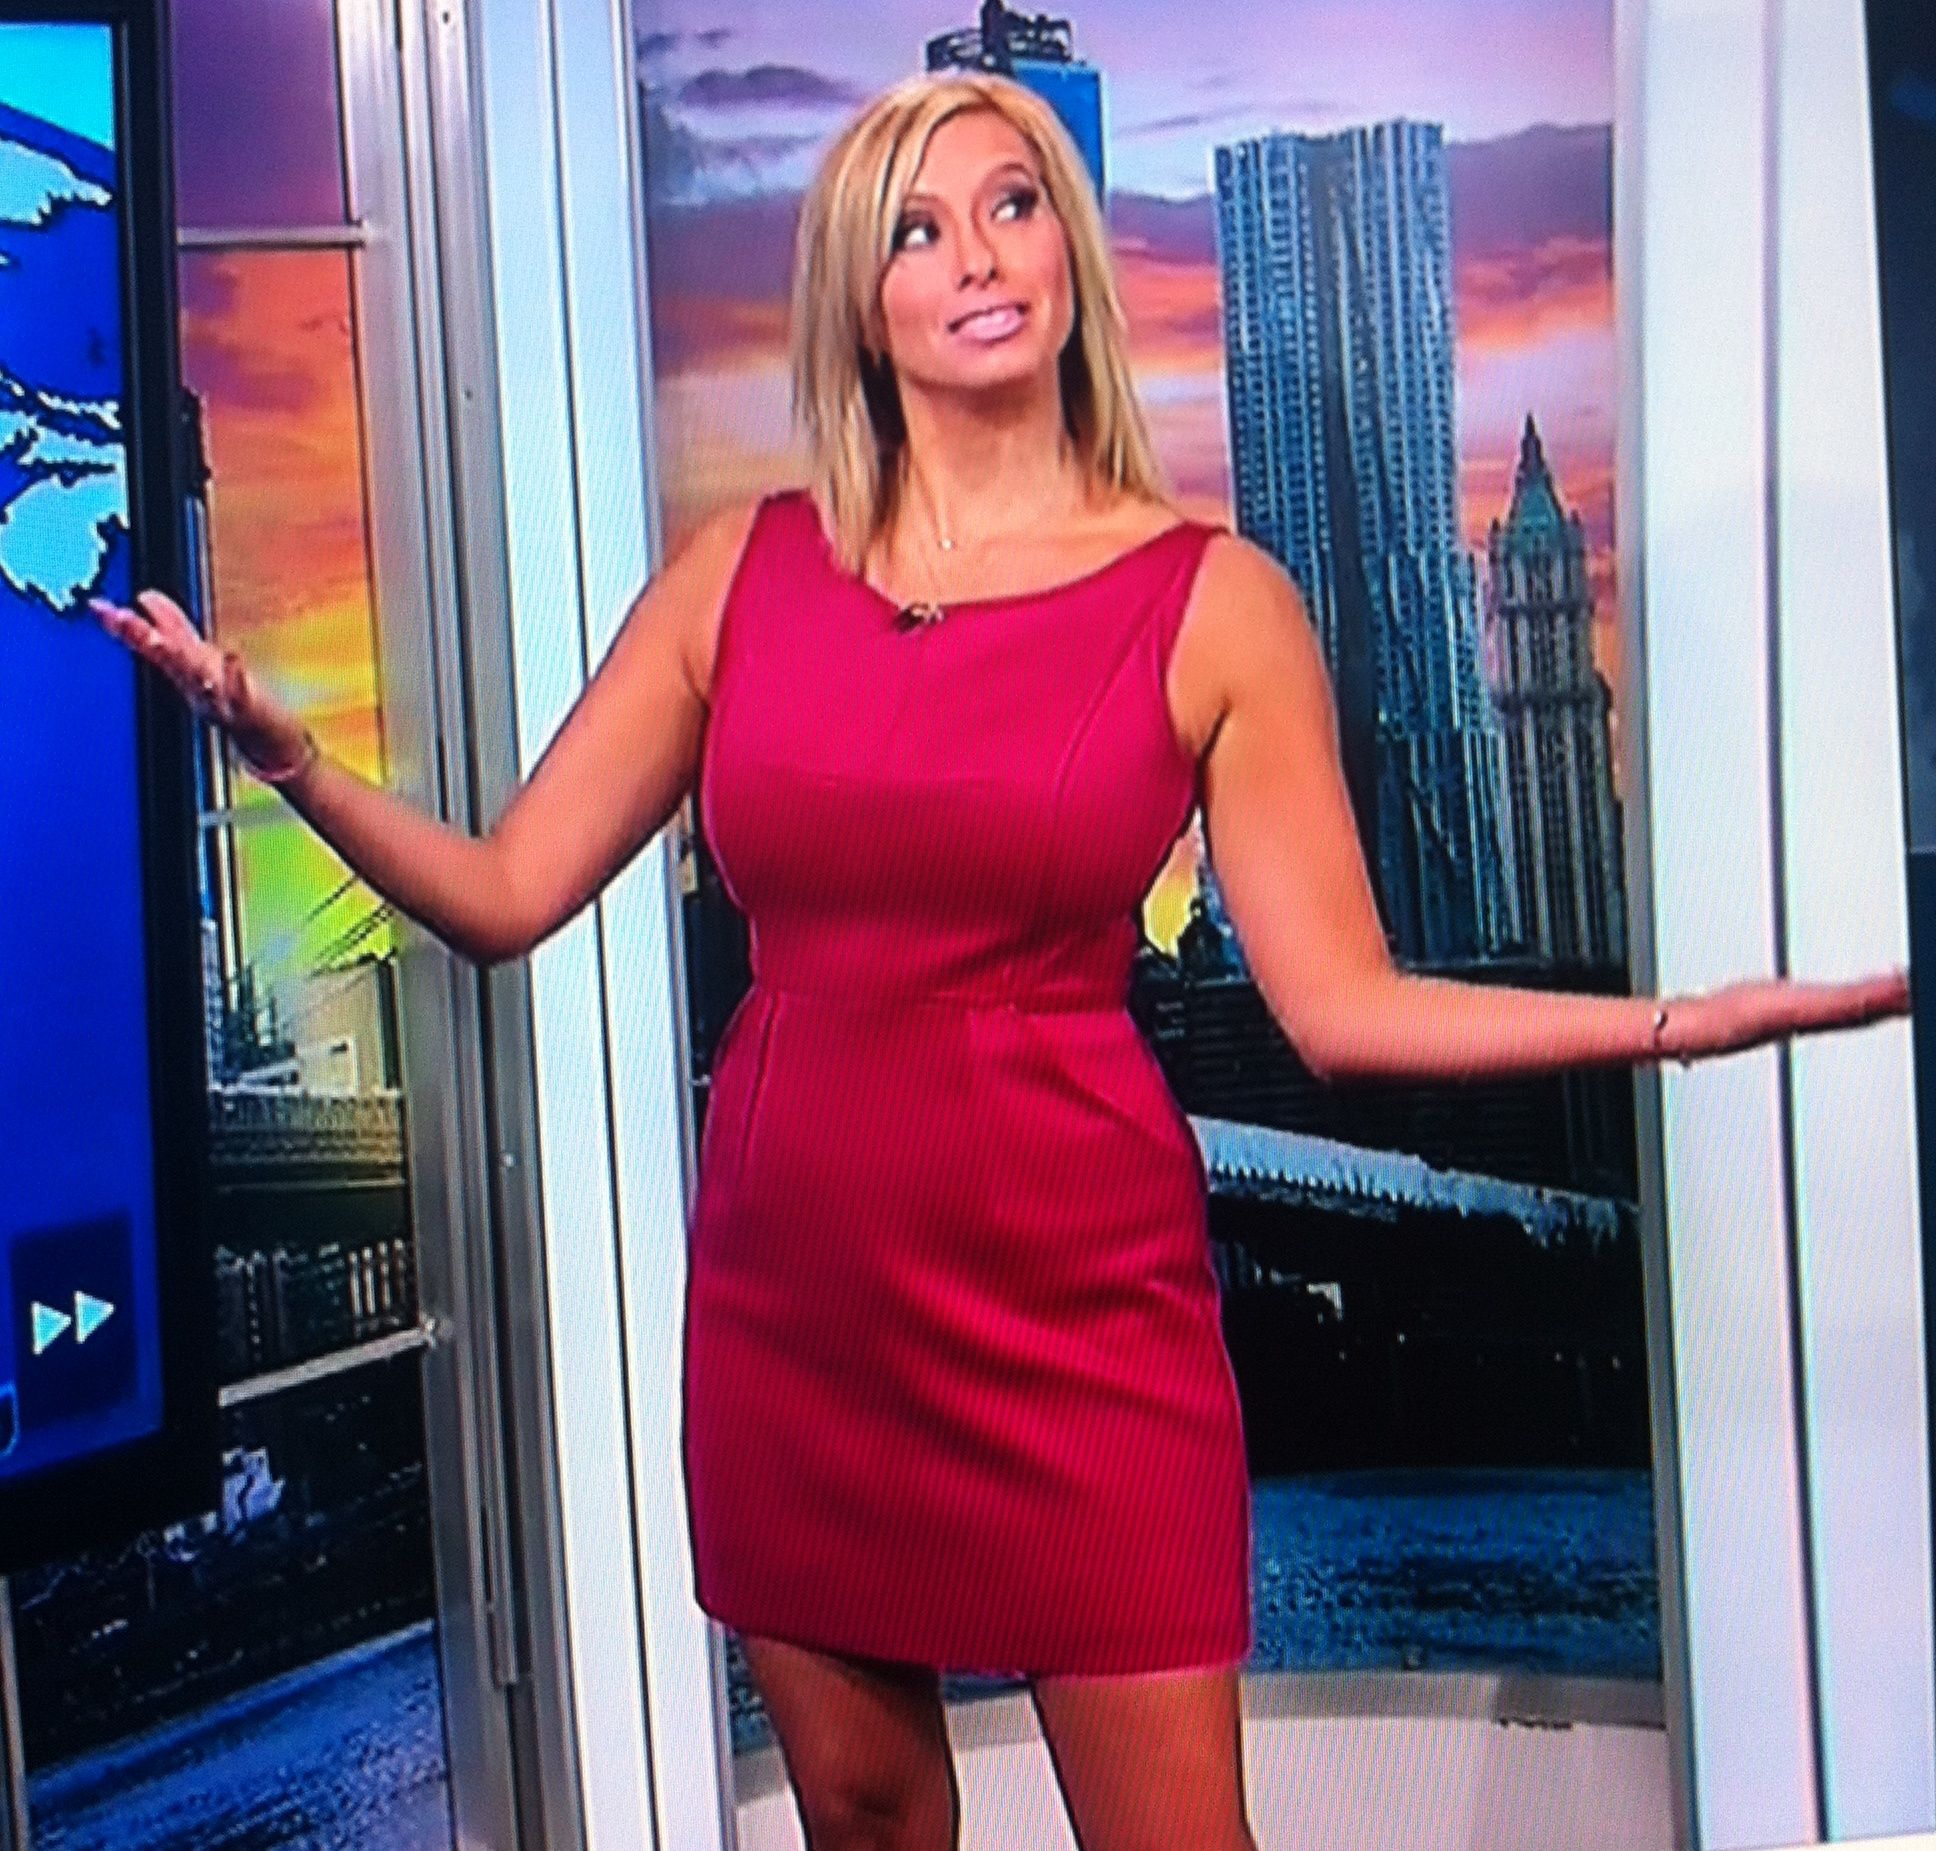 twc the weather channel girls legs